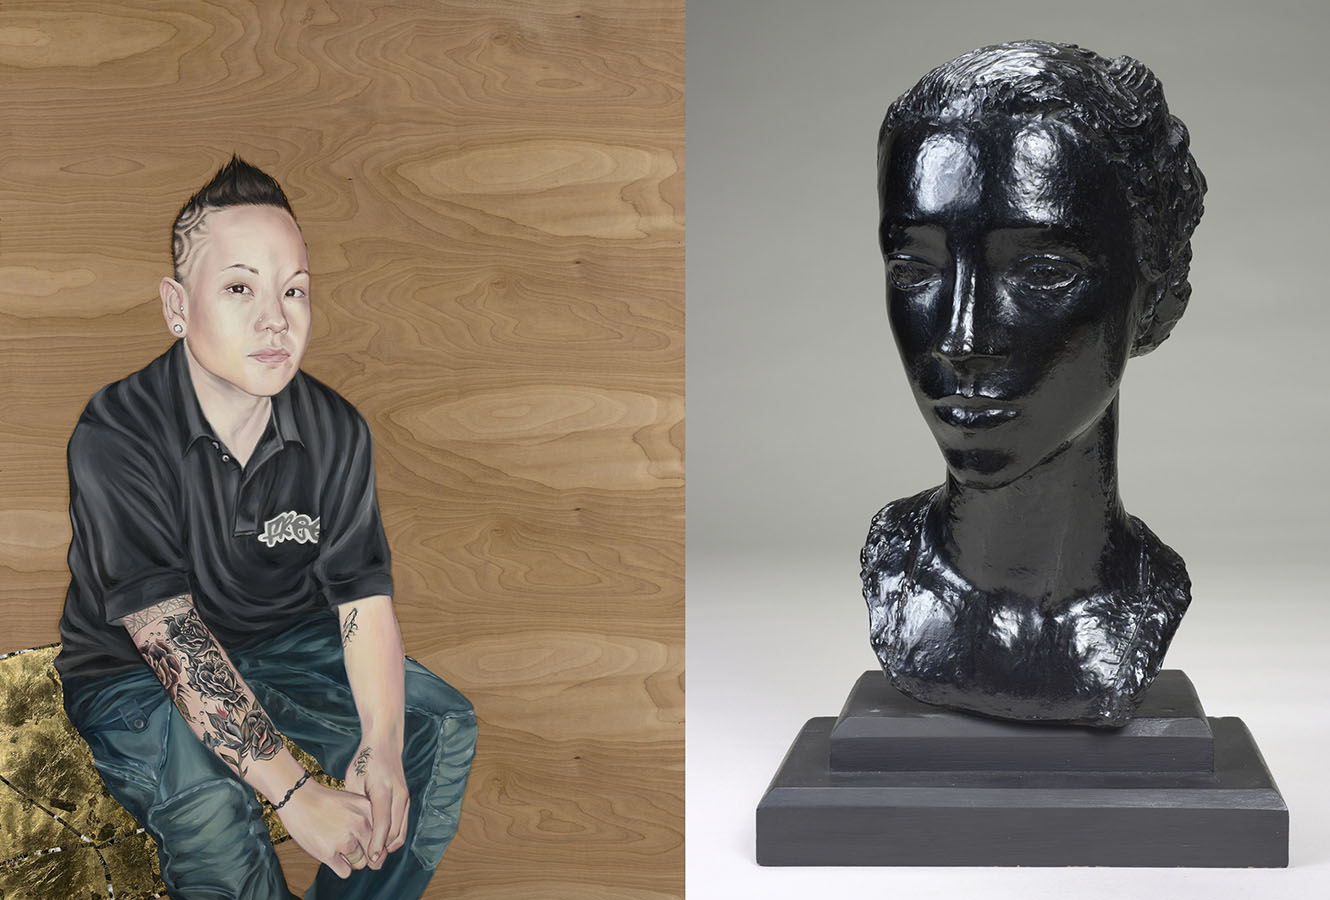 Painting of young person with arm tattoo revealed. Painted sculpture bust of a woman.